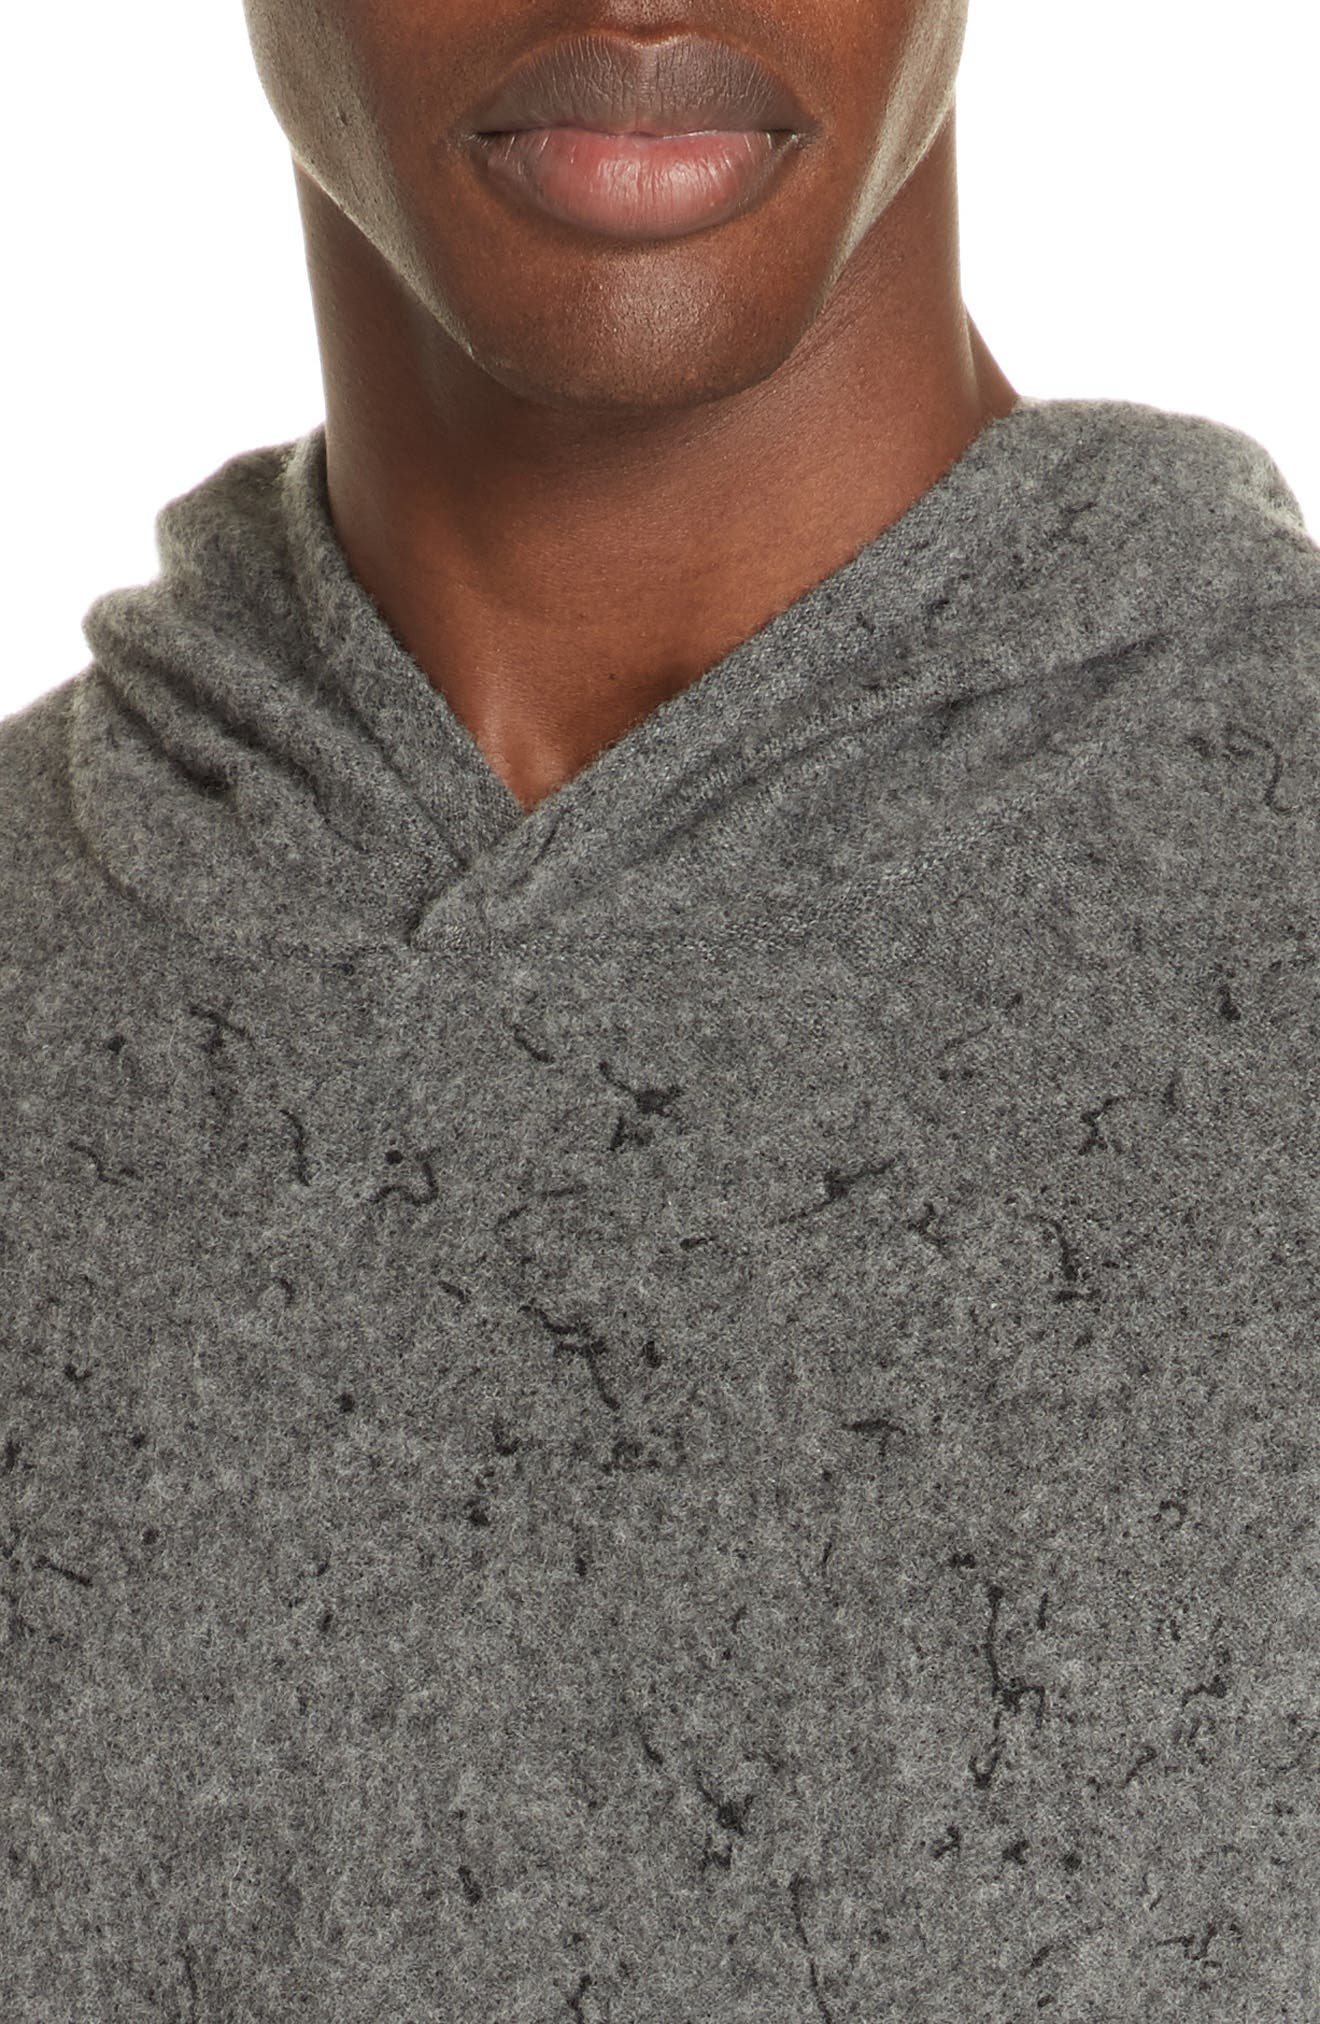 Wool Cashmere Hooded Sweater,                             Alternate thumbnail 4, color,                             SMOKE HEATHER